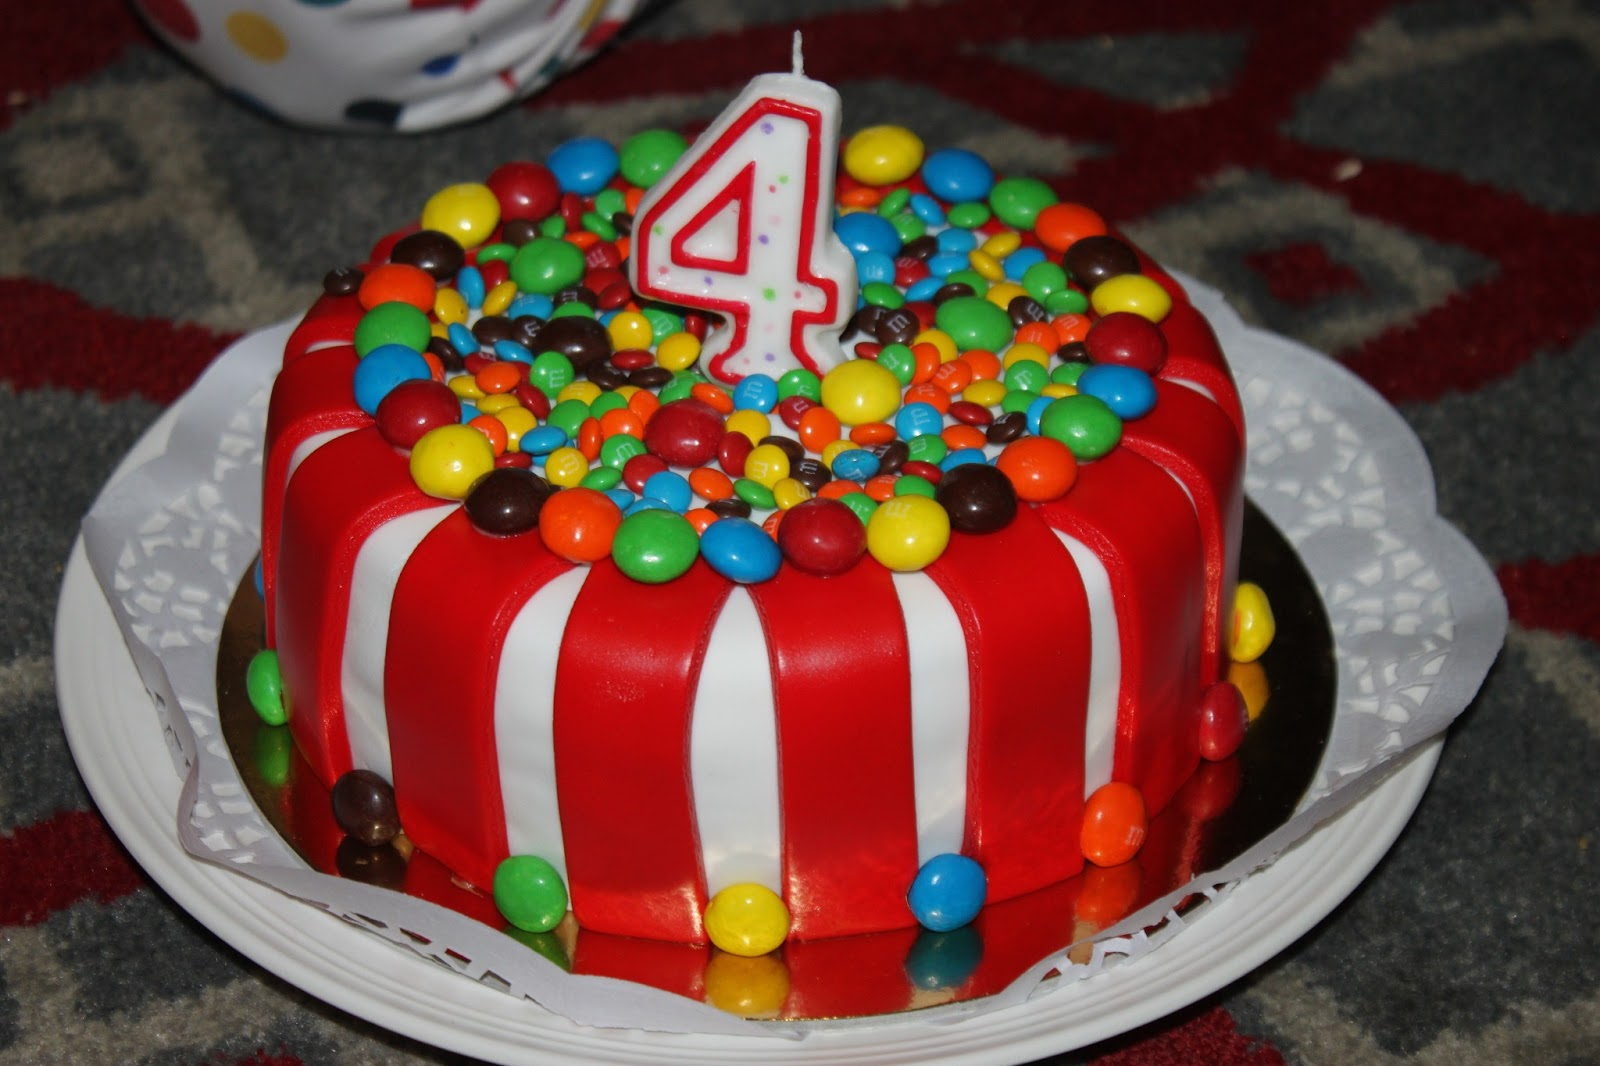 Cake Images For Didi : LoLovie: LoLo s Circus and Carnival - 4th birthday party